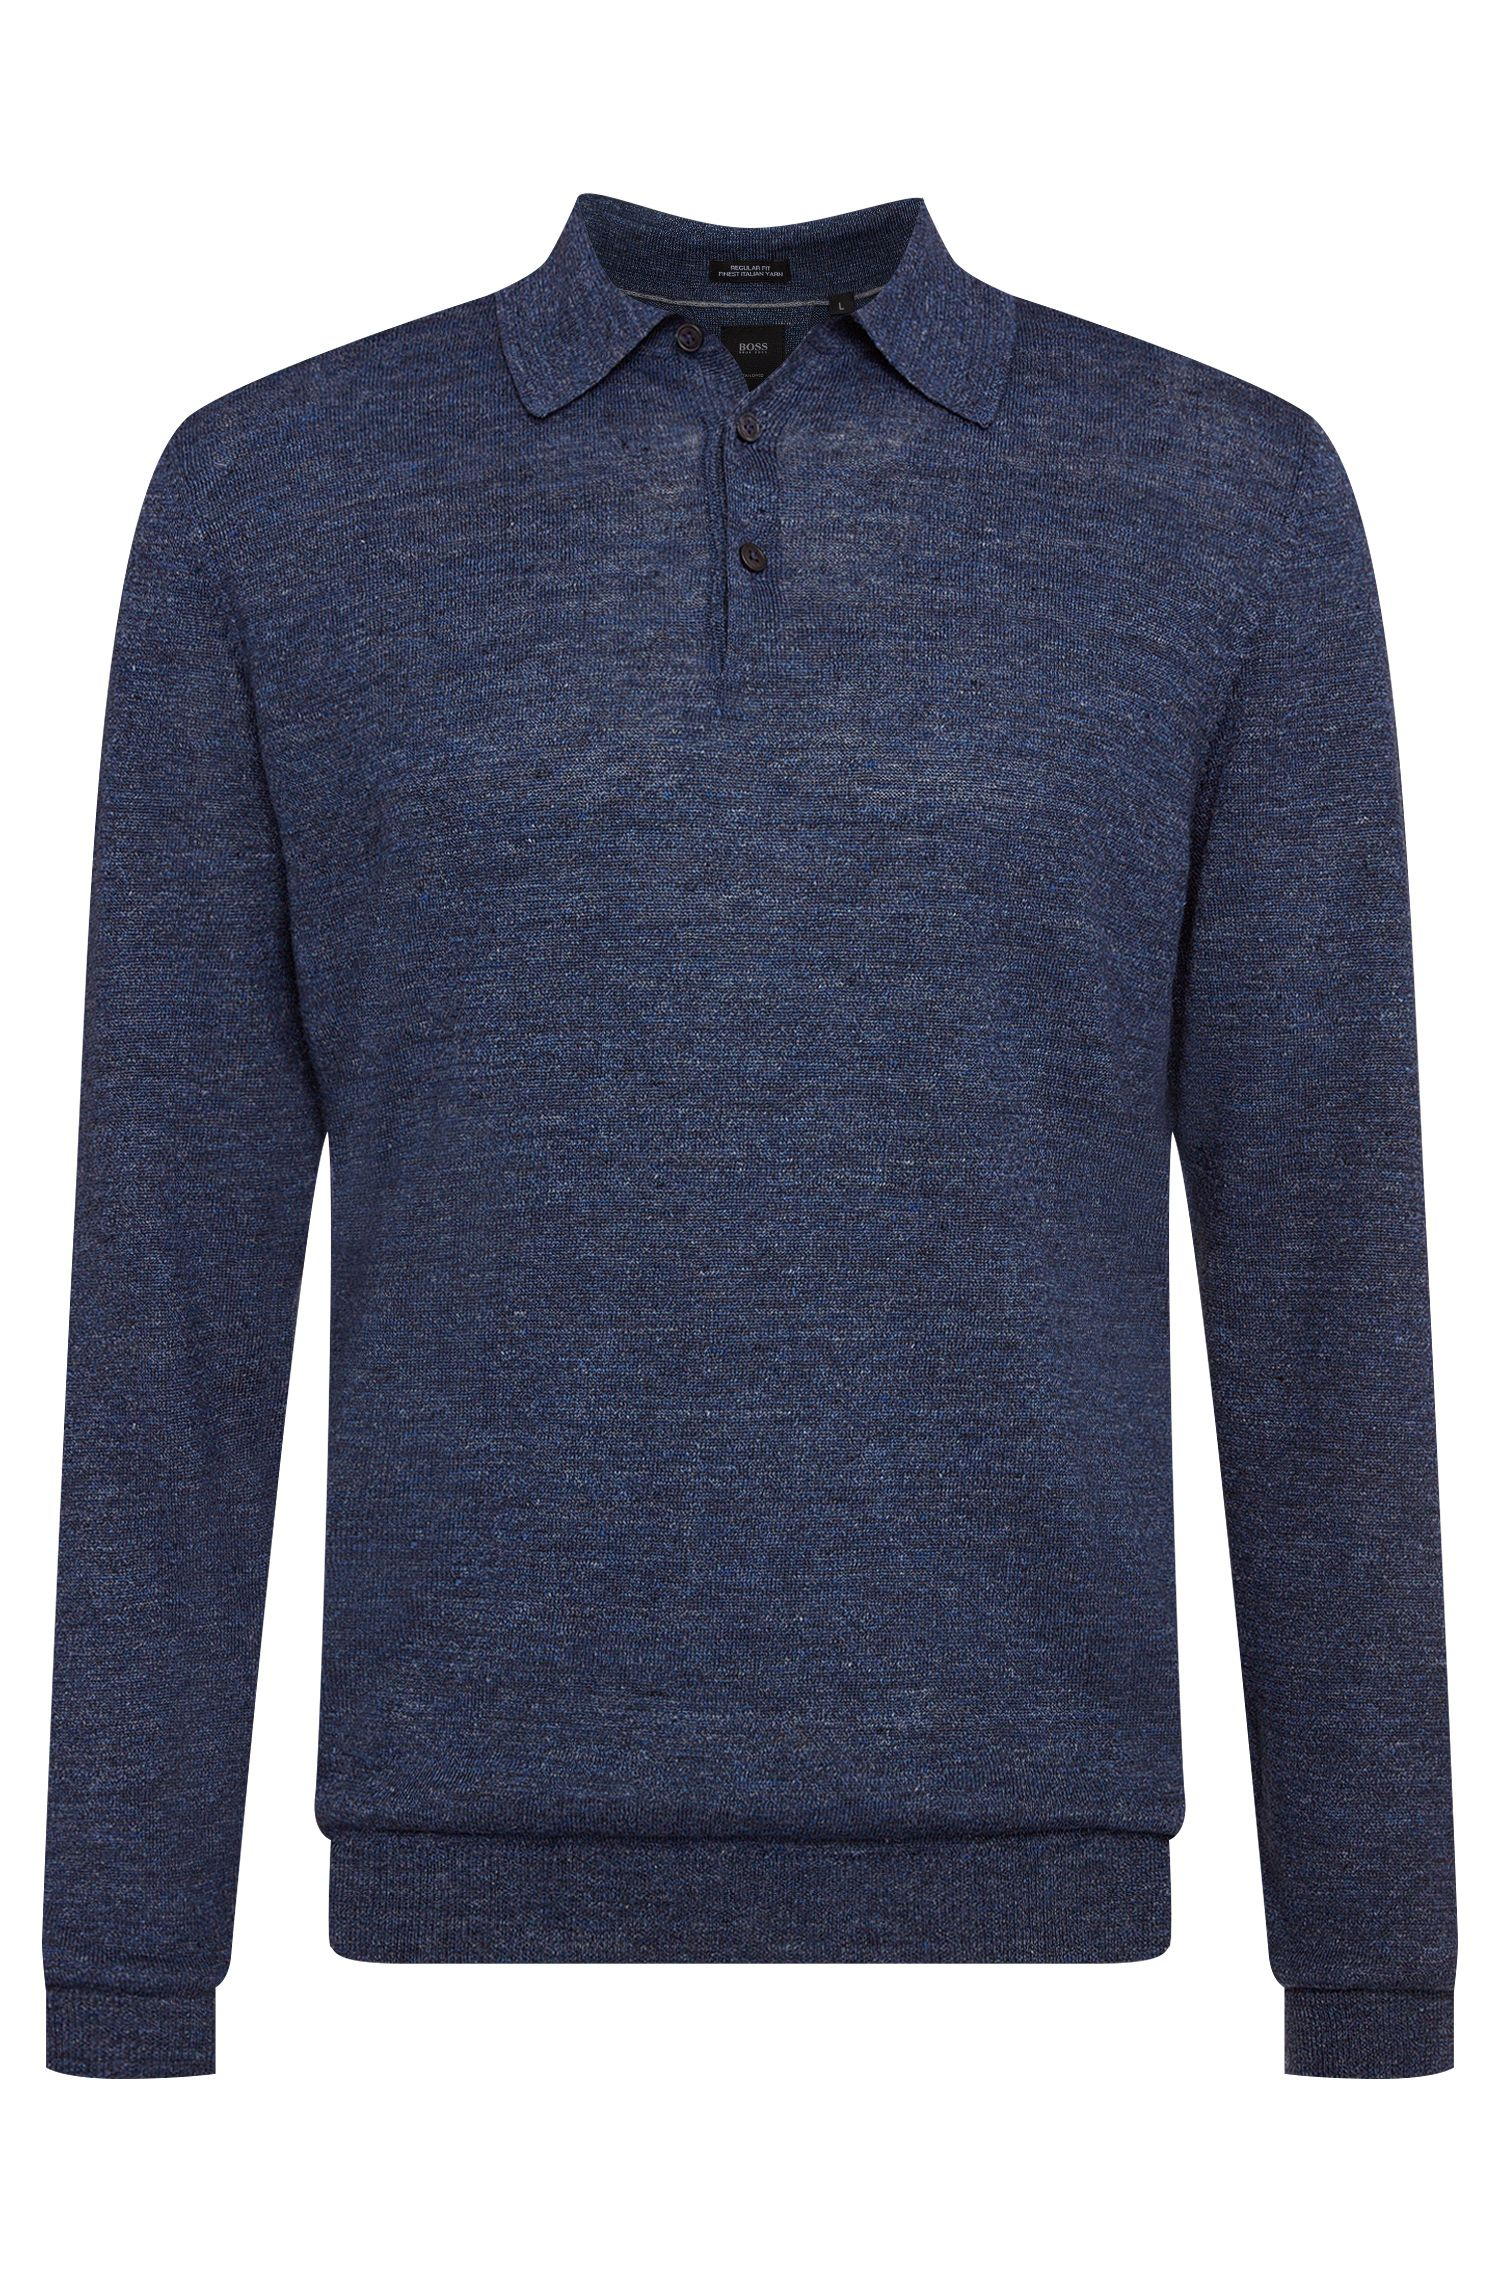 'T-Hugh' | Regular Fit, Italian Linen, Wool Polo Sweater